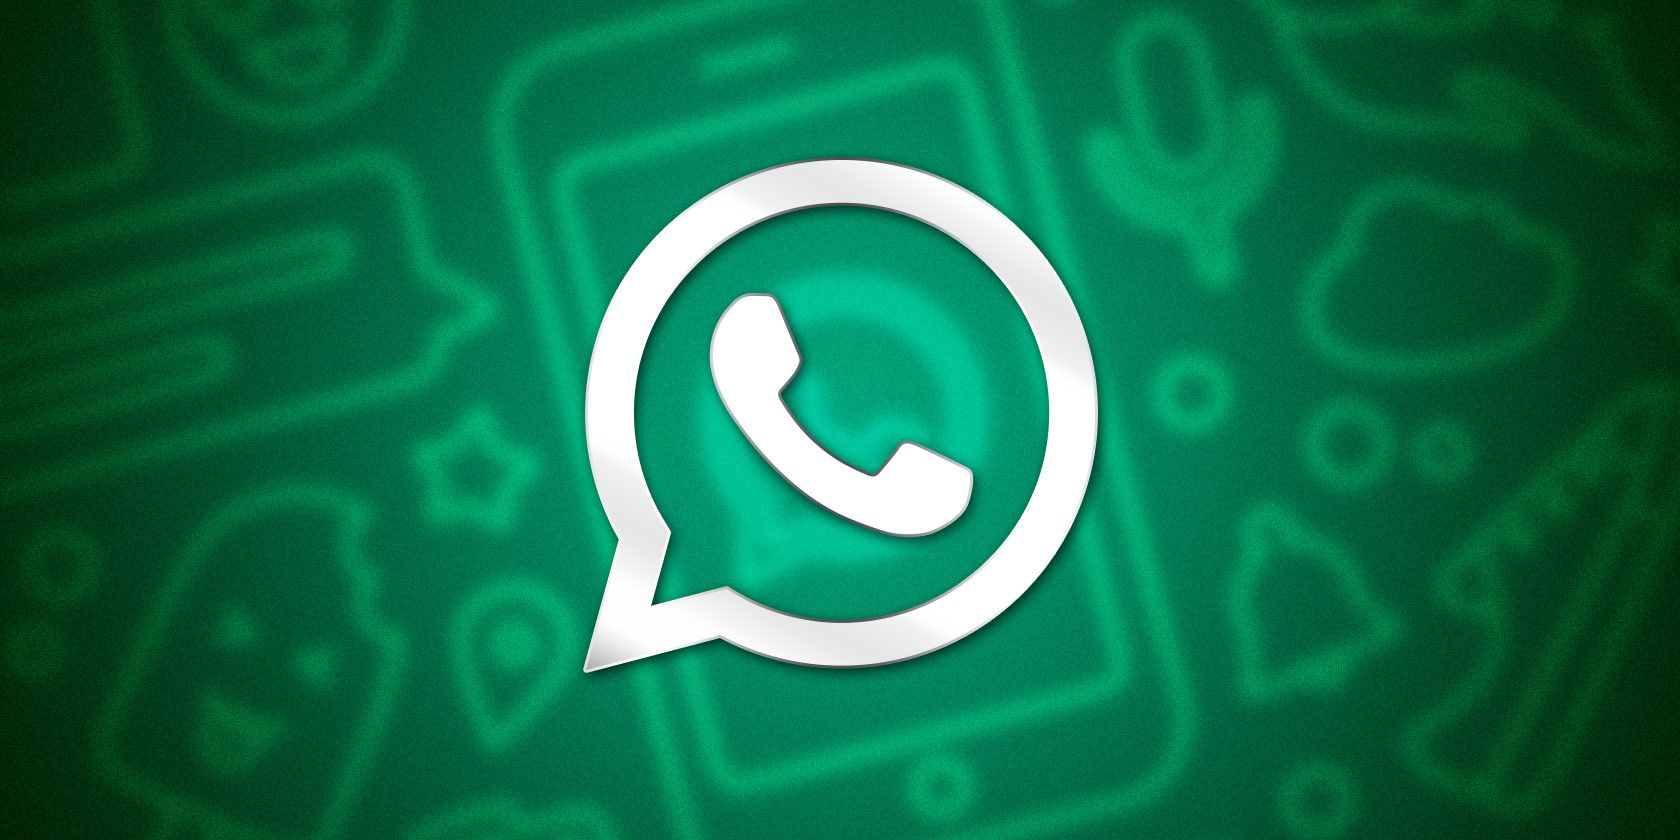 Manual whatsapp pdf 2017